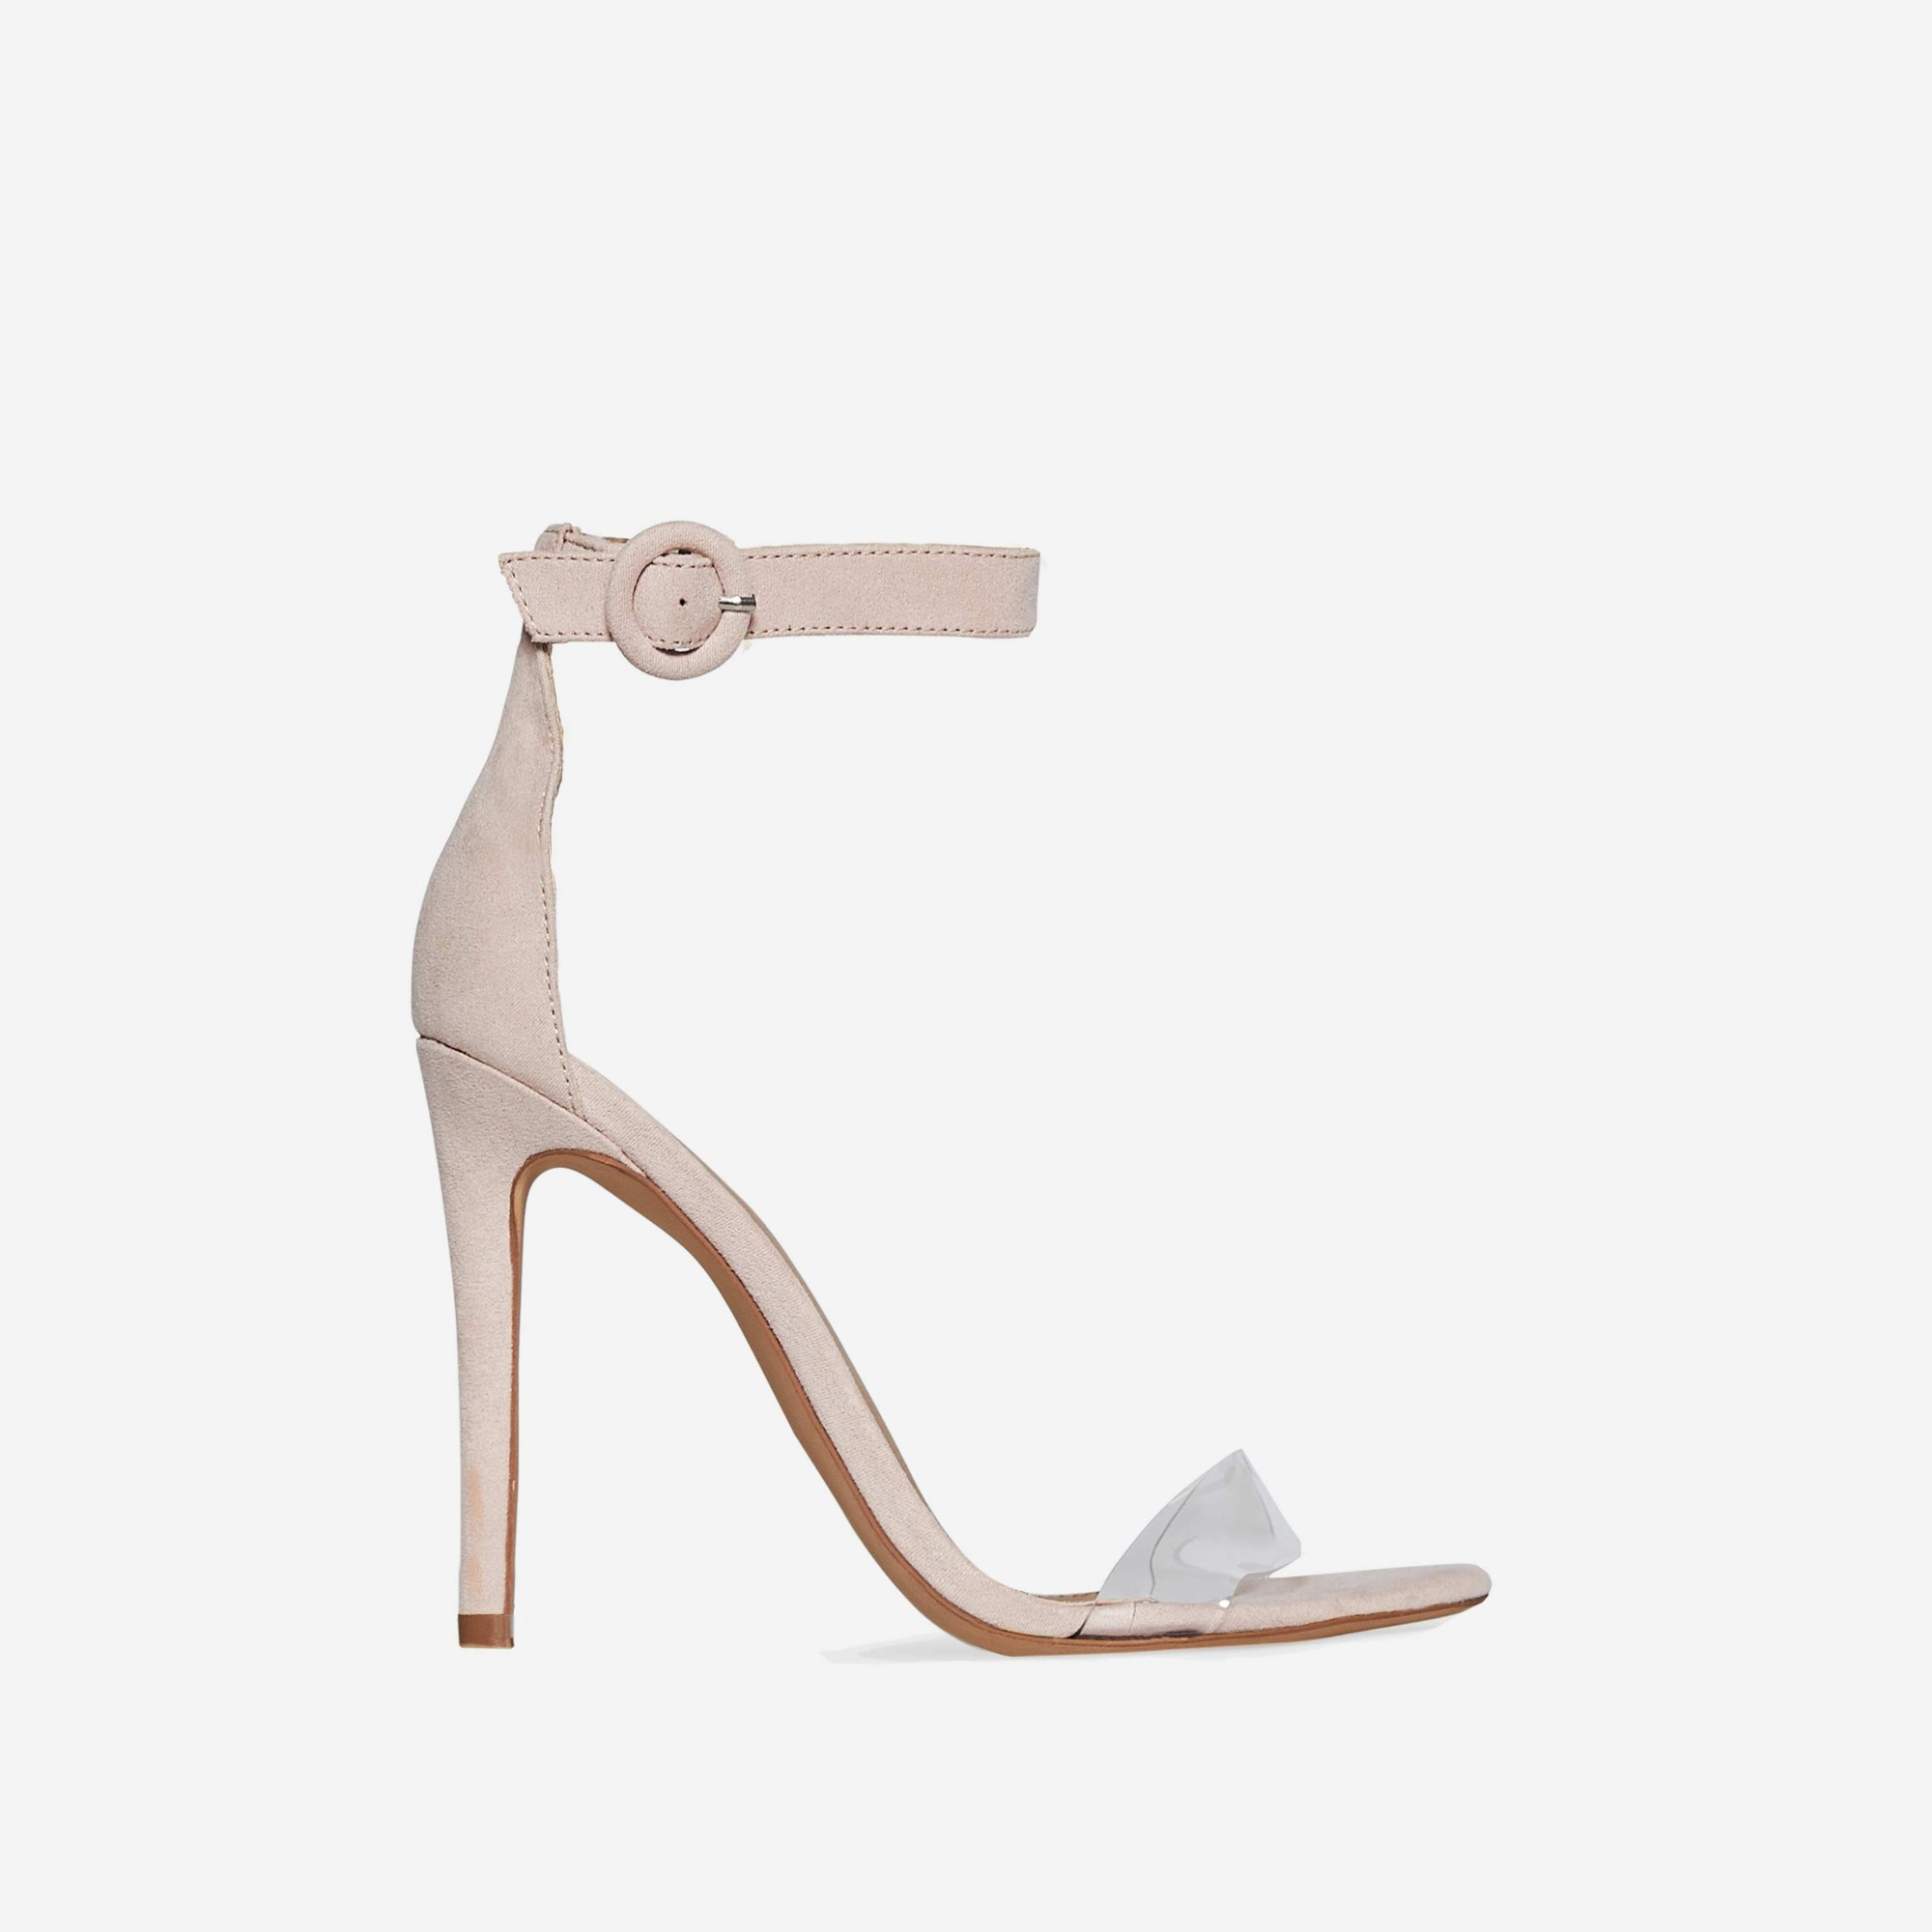 Jena Perspex Barley There Heel In Nude Faux Suede